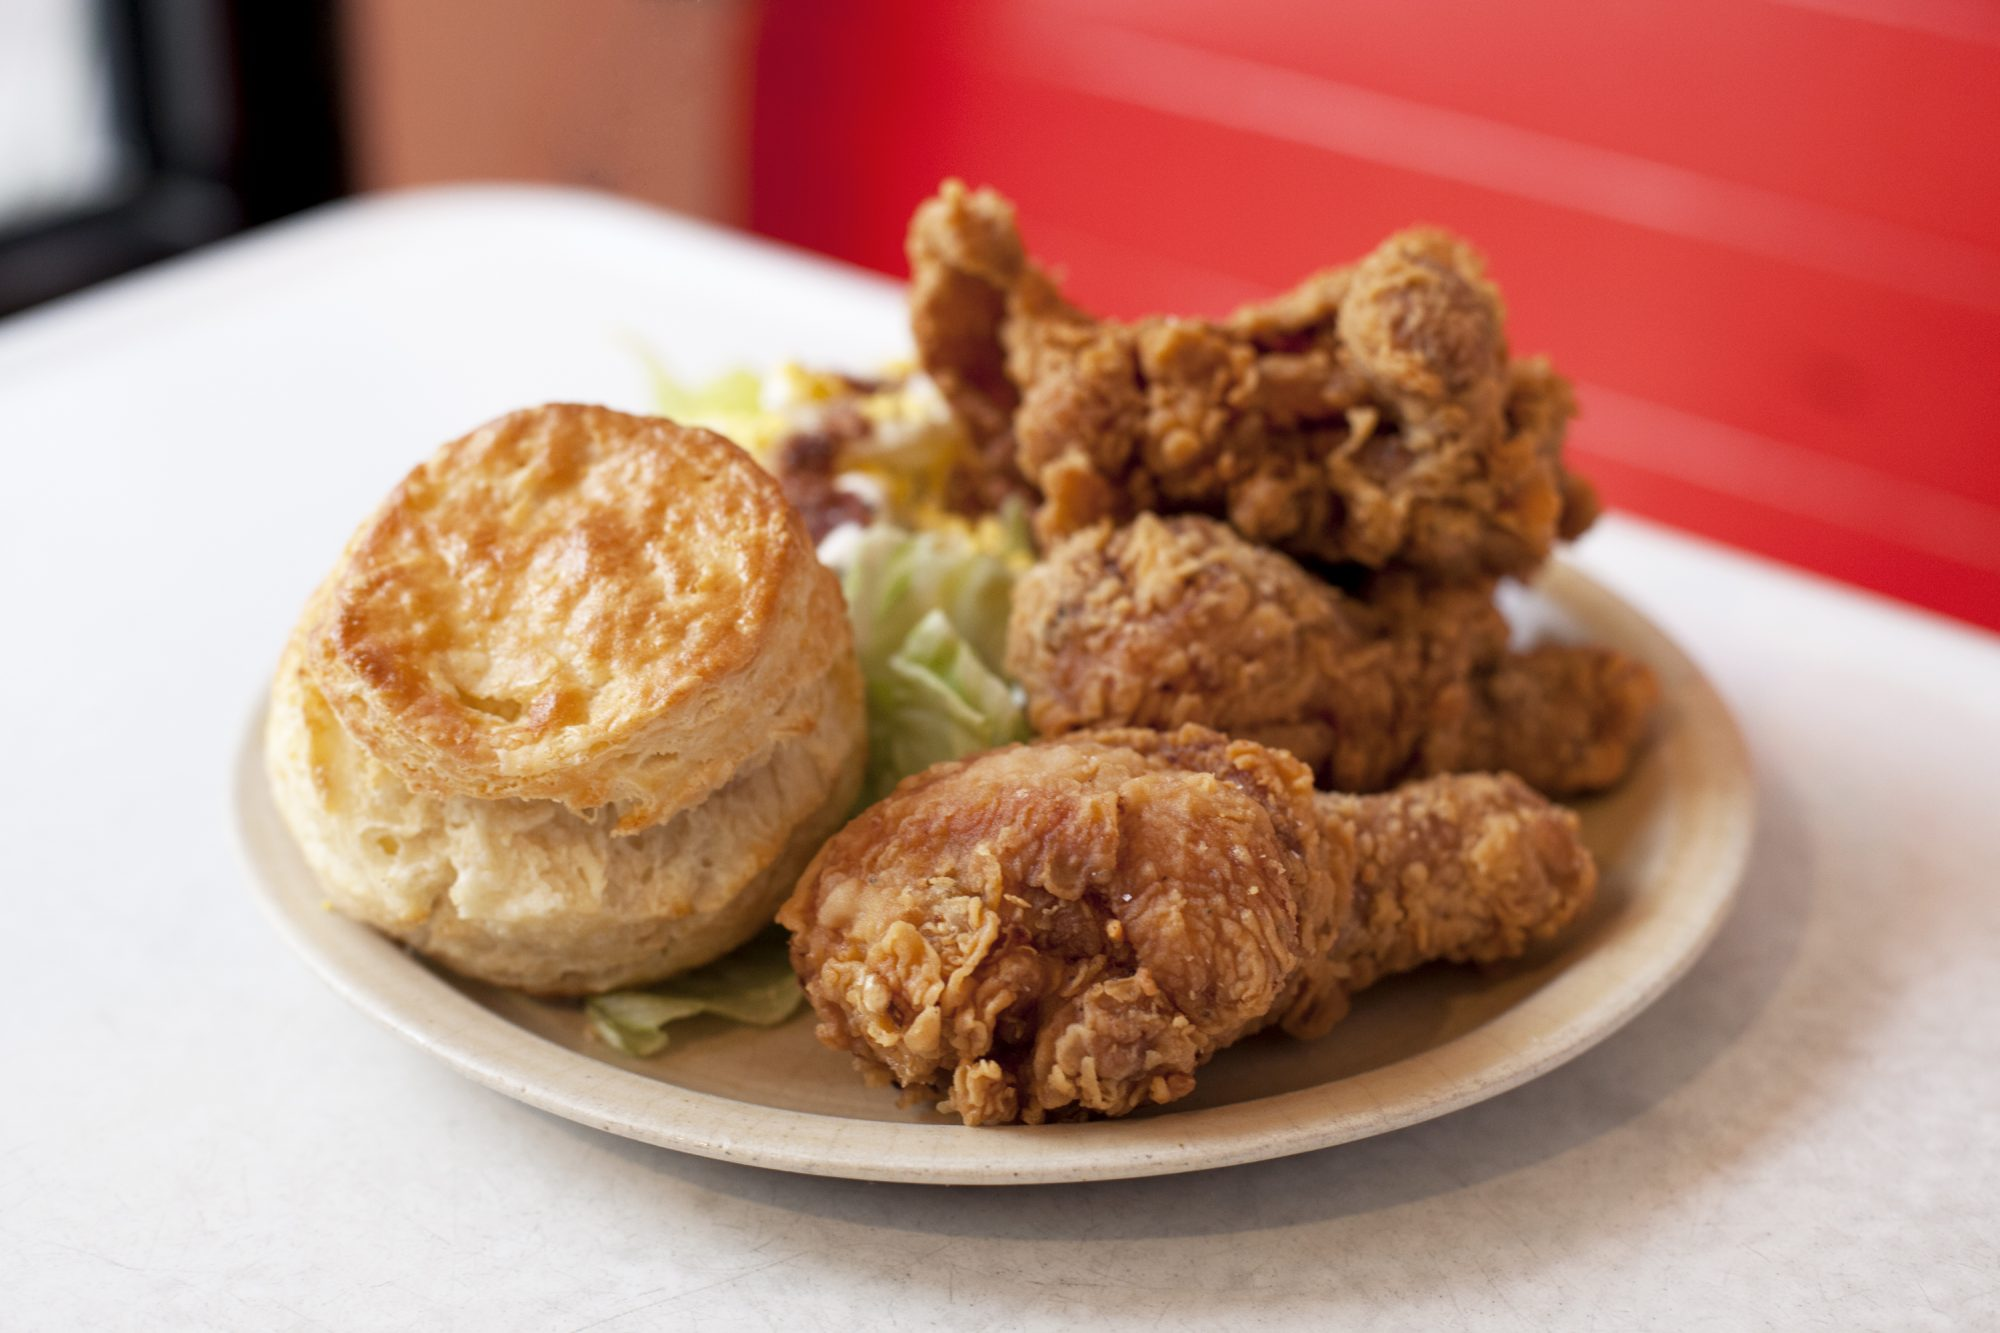 RX_1609_F&W Syndication_Best Fried Chicken in th U.S._pies n thighs